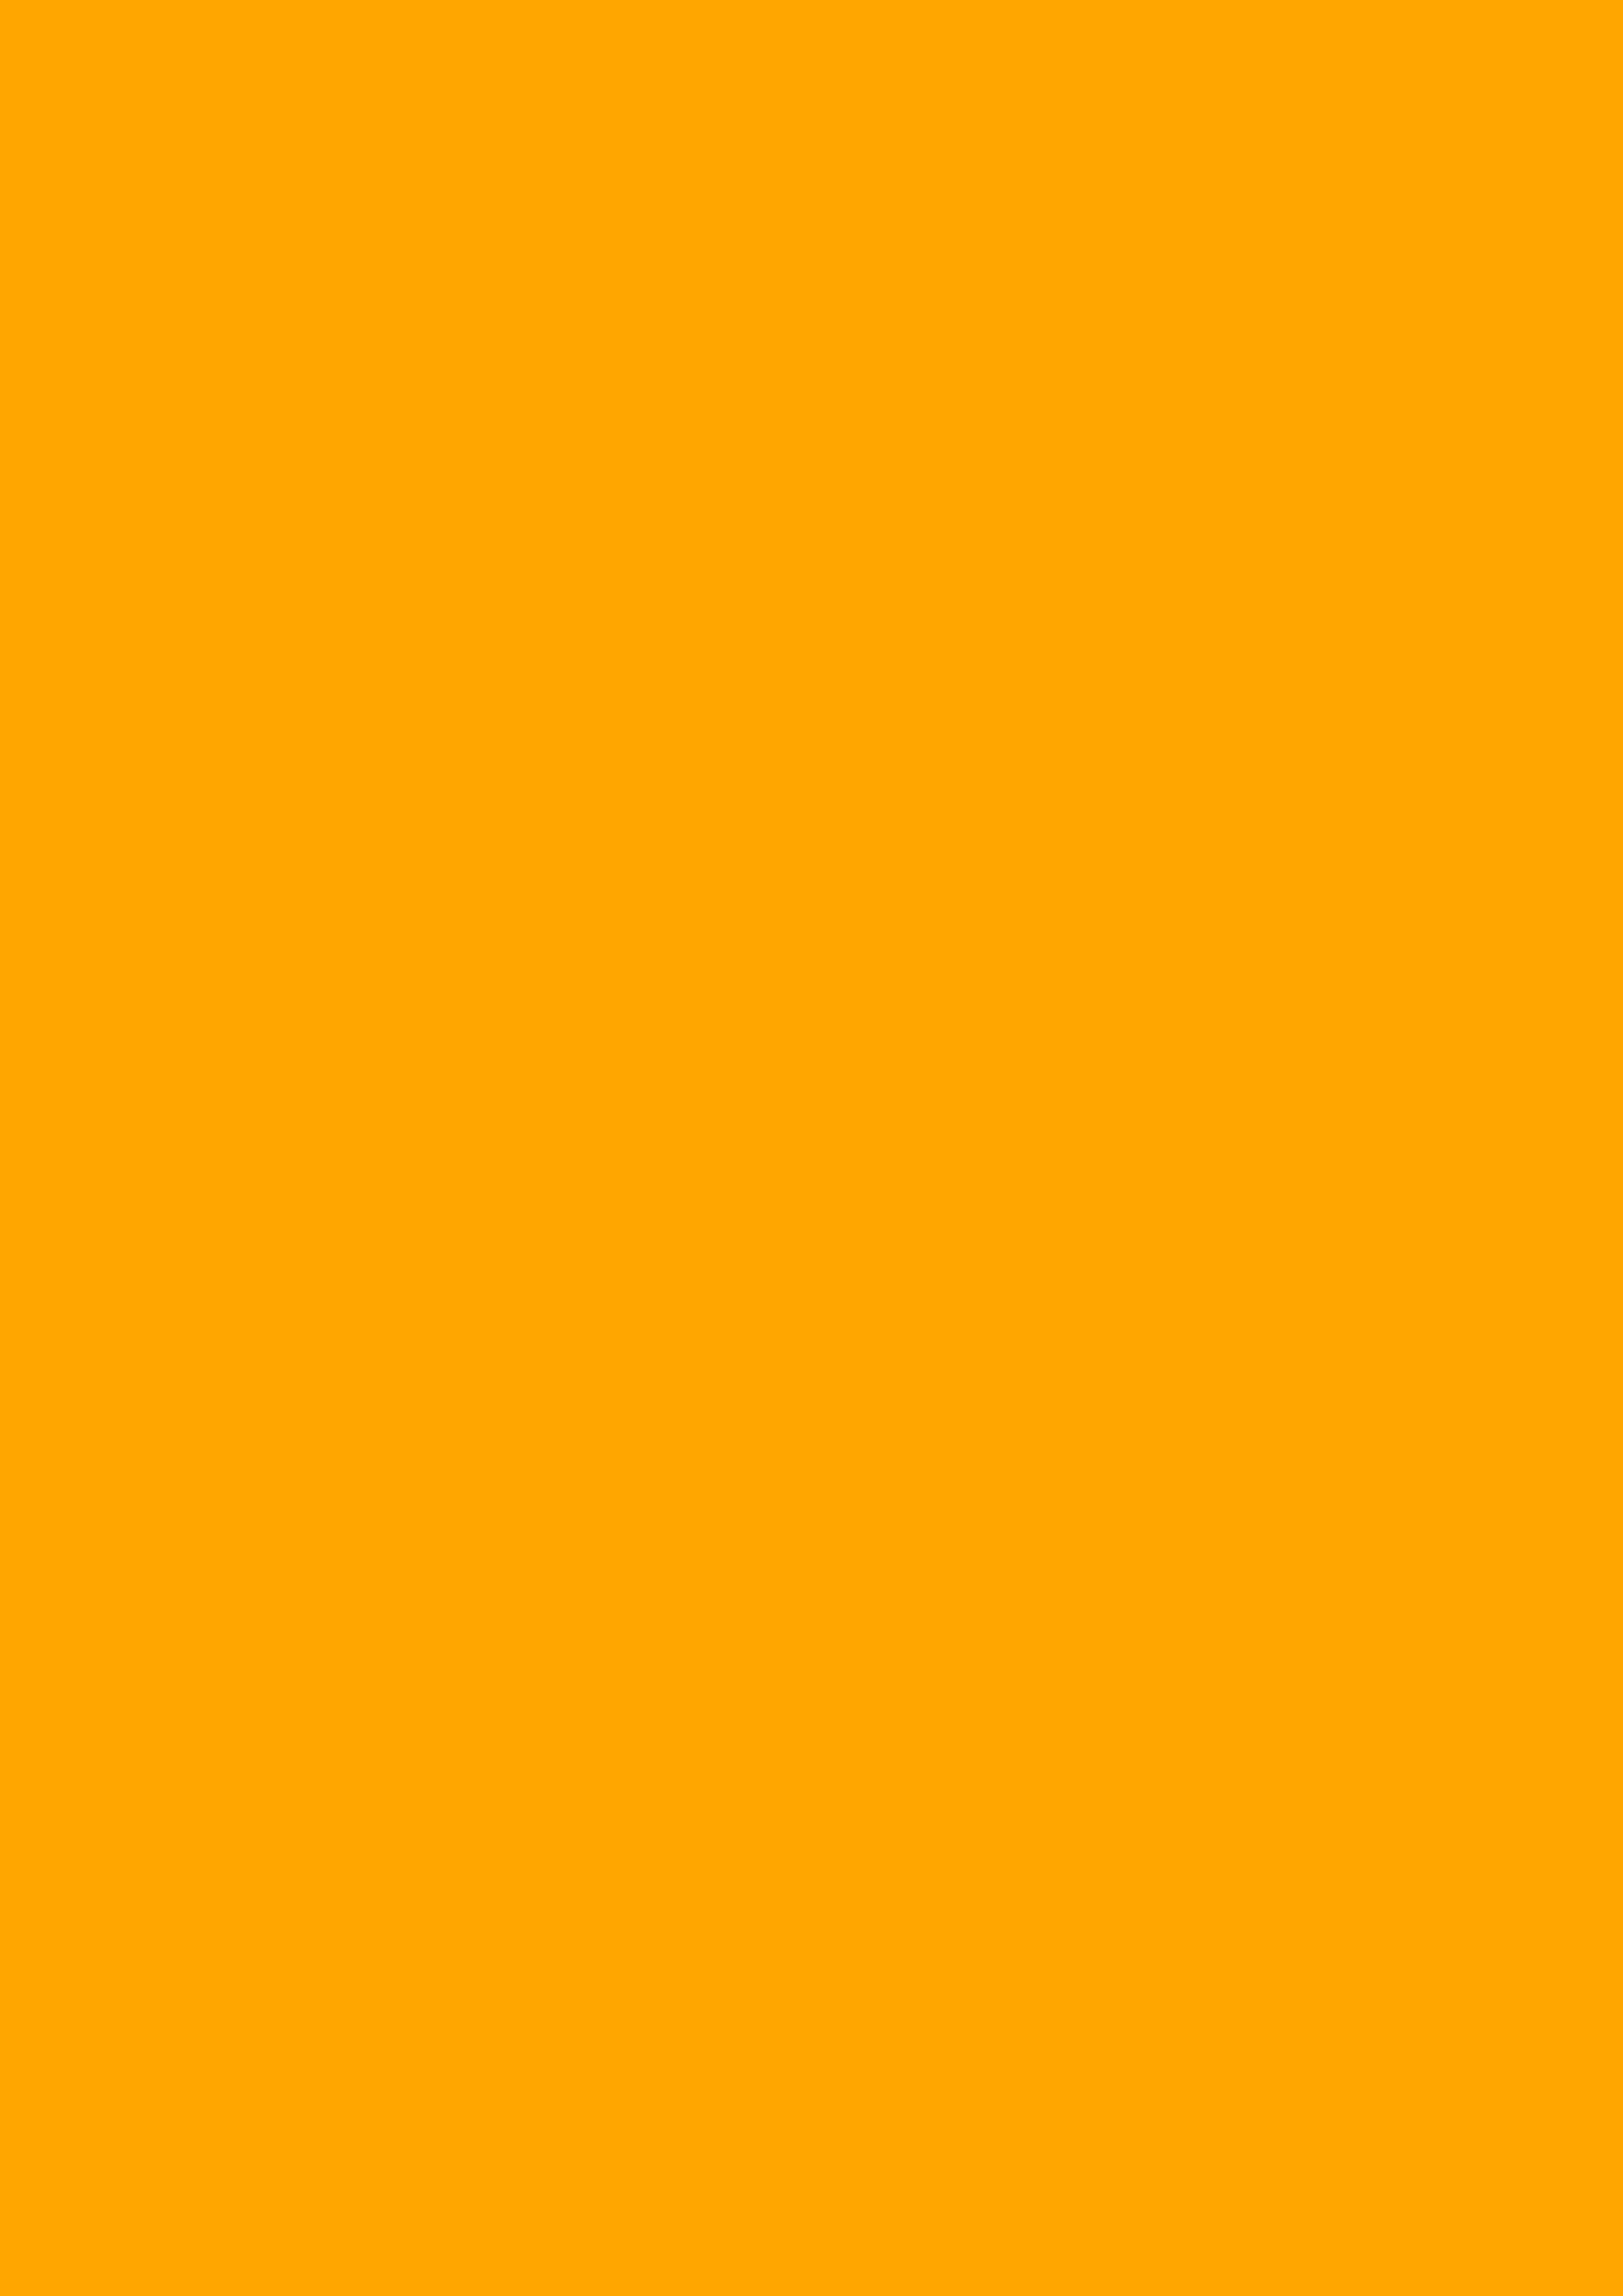 2480x3508 Chrome Yellow Solid Color Background